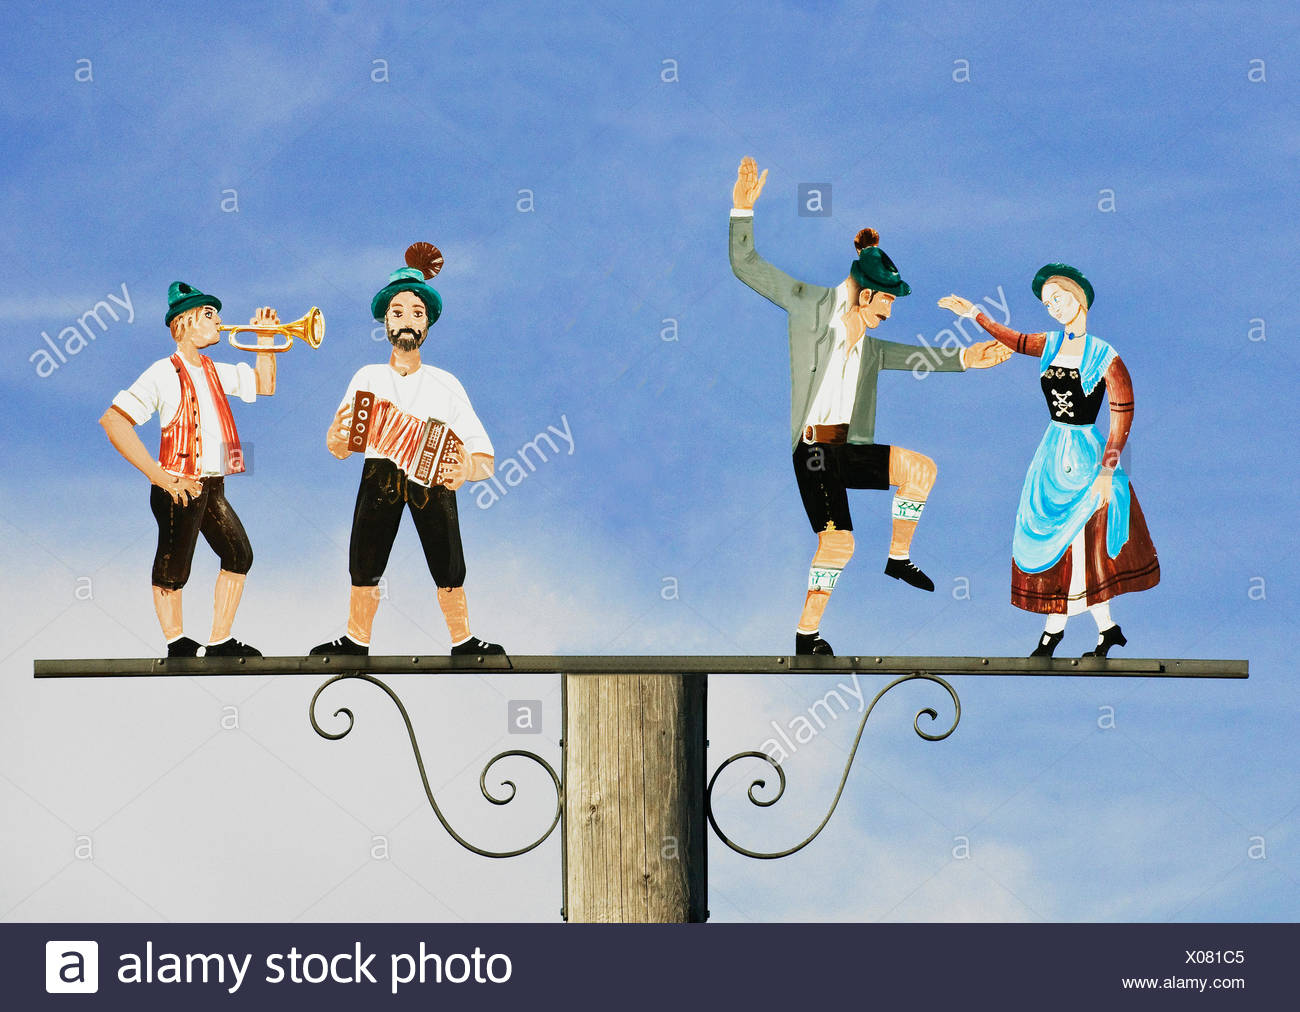 Musicians and dancers, tradition, lovingly decorated depiction, Bavaria - Stock Image